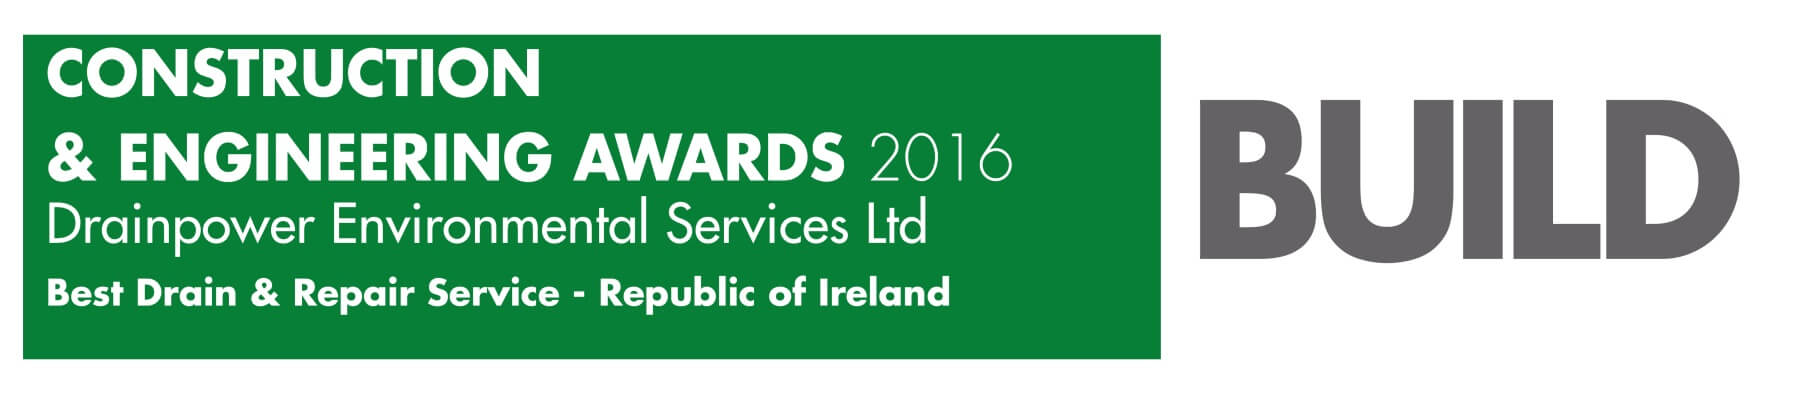 Best Drain & Repair Service - Republic of Ireland